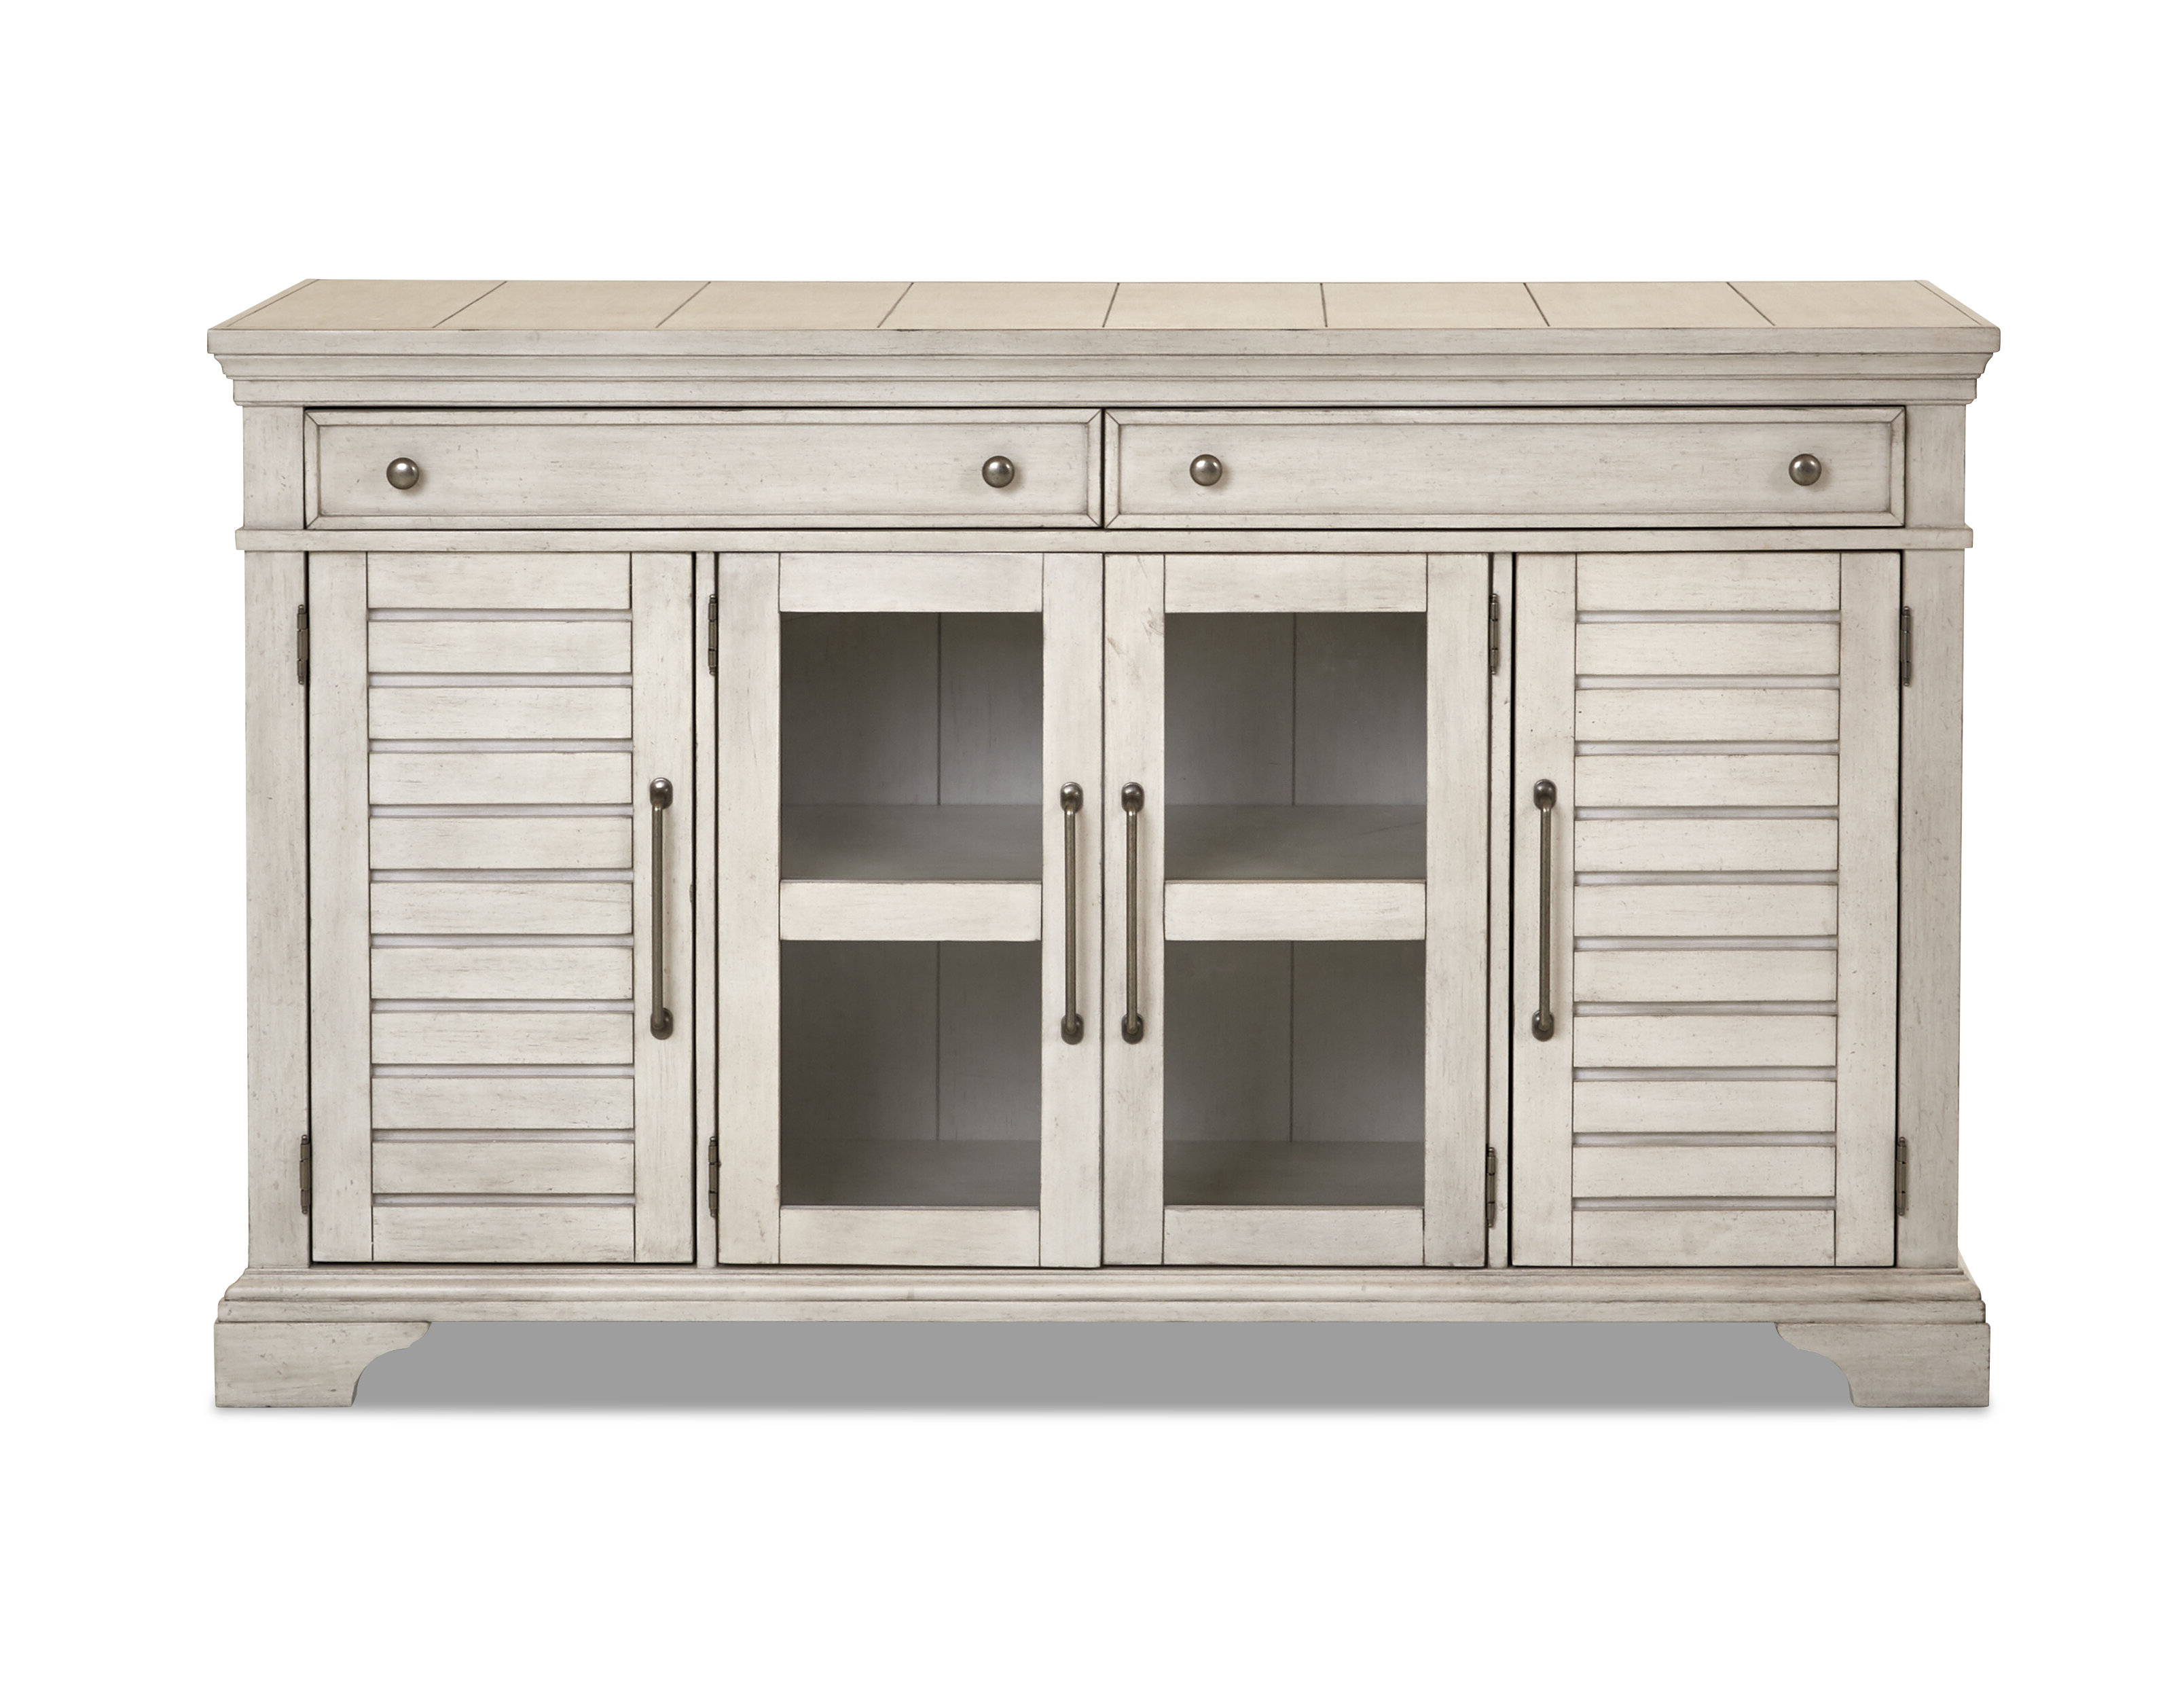 Trisha Yearwood Home Key West Sideboard With Regard To Saguenay Sideboards (View 14 of 20)